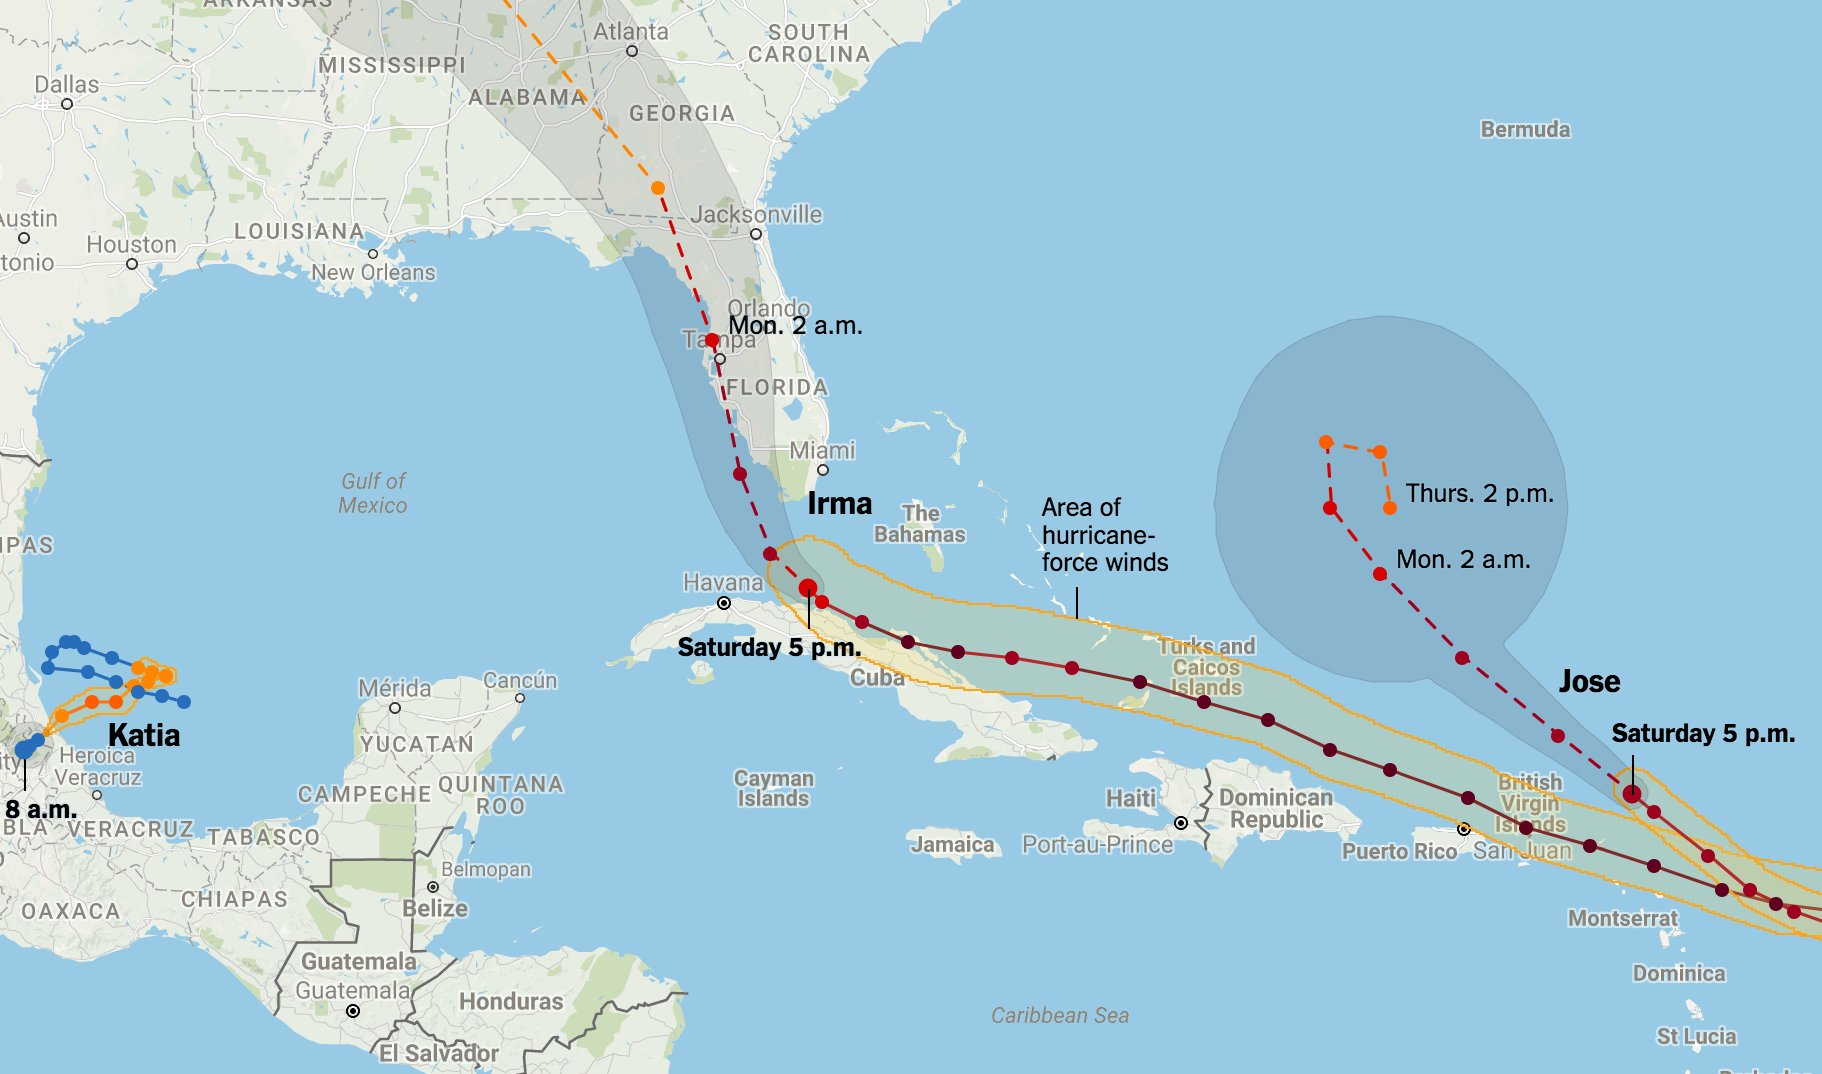 Maps: Tracking Hurricanes Irma, Jose and Katia https://t.co/Sb1h6j4Lh9 https://t.co/DqjwwwMBlR